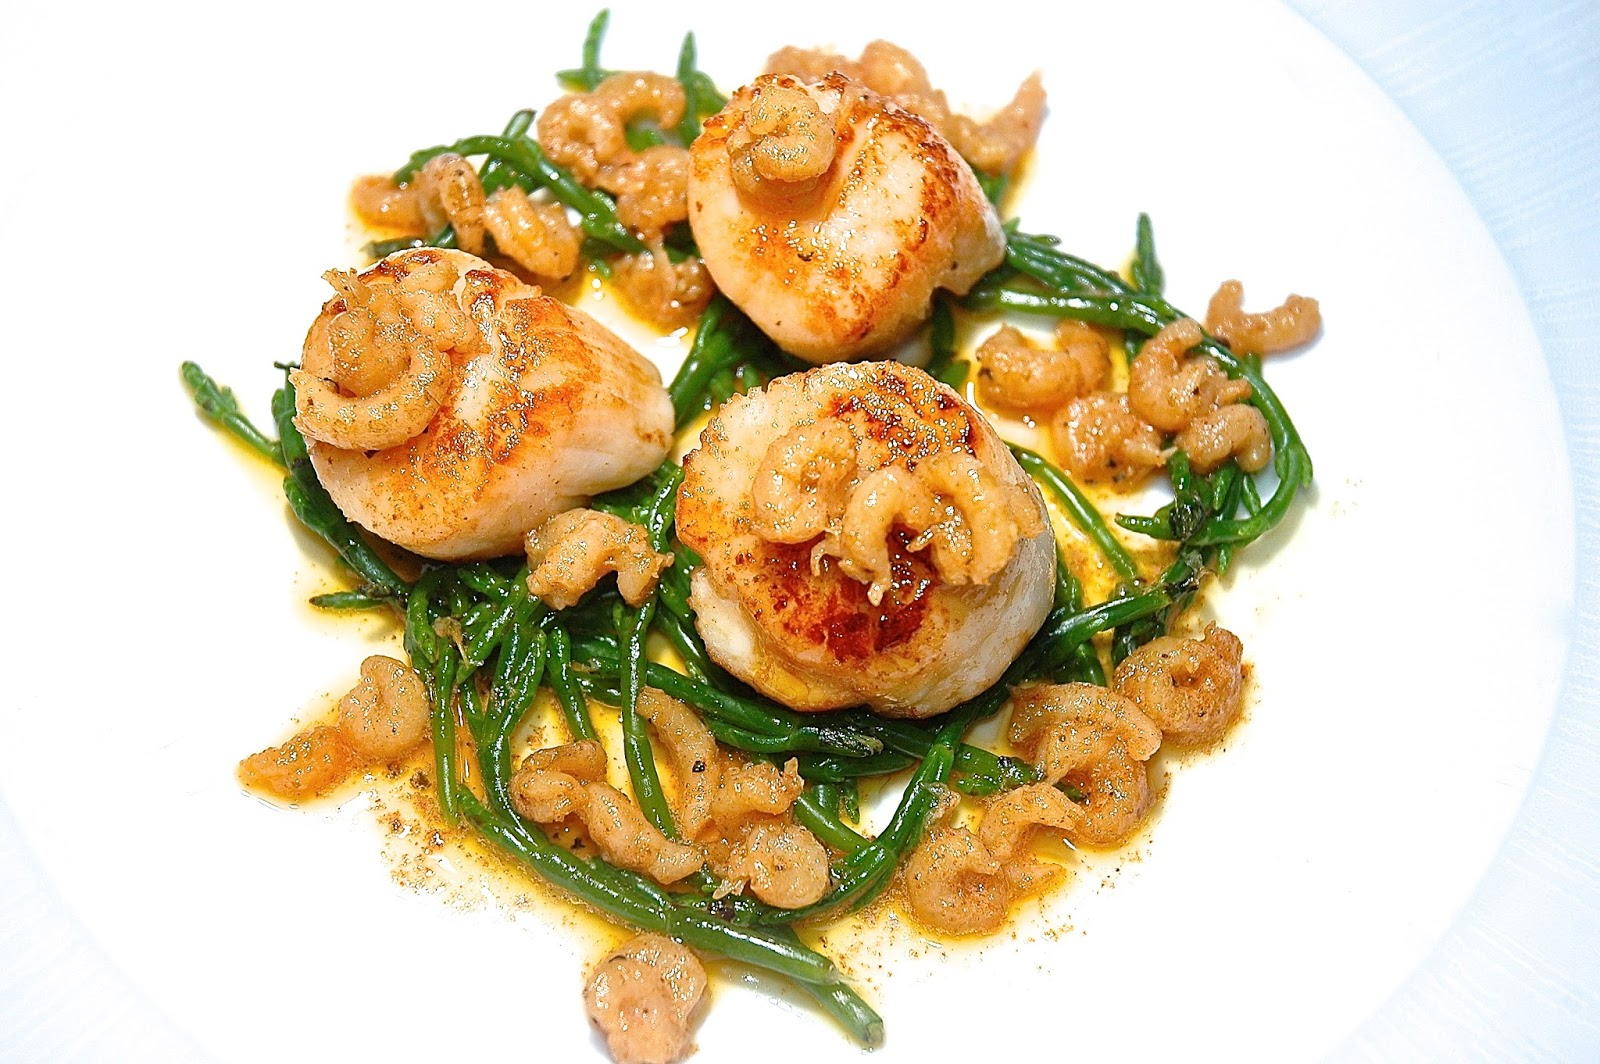 nueva cocina: Hand Dived Scallops, Potted Shrimp Butter, Samphire